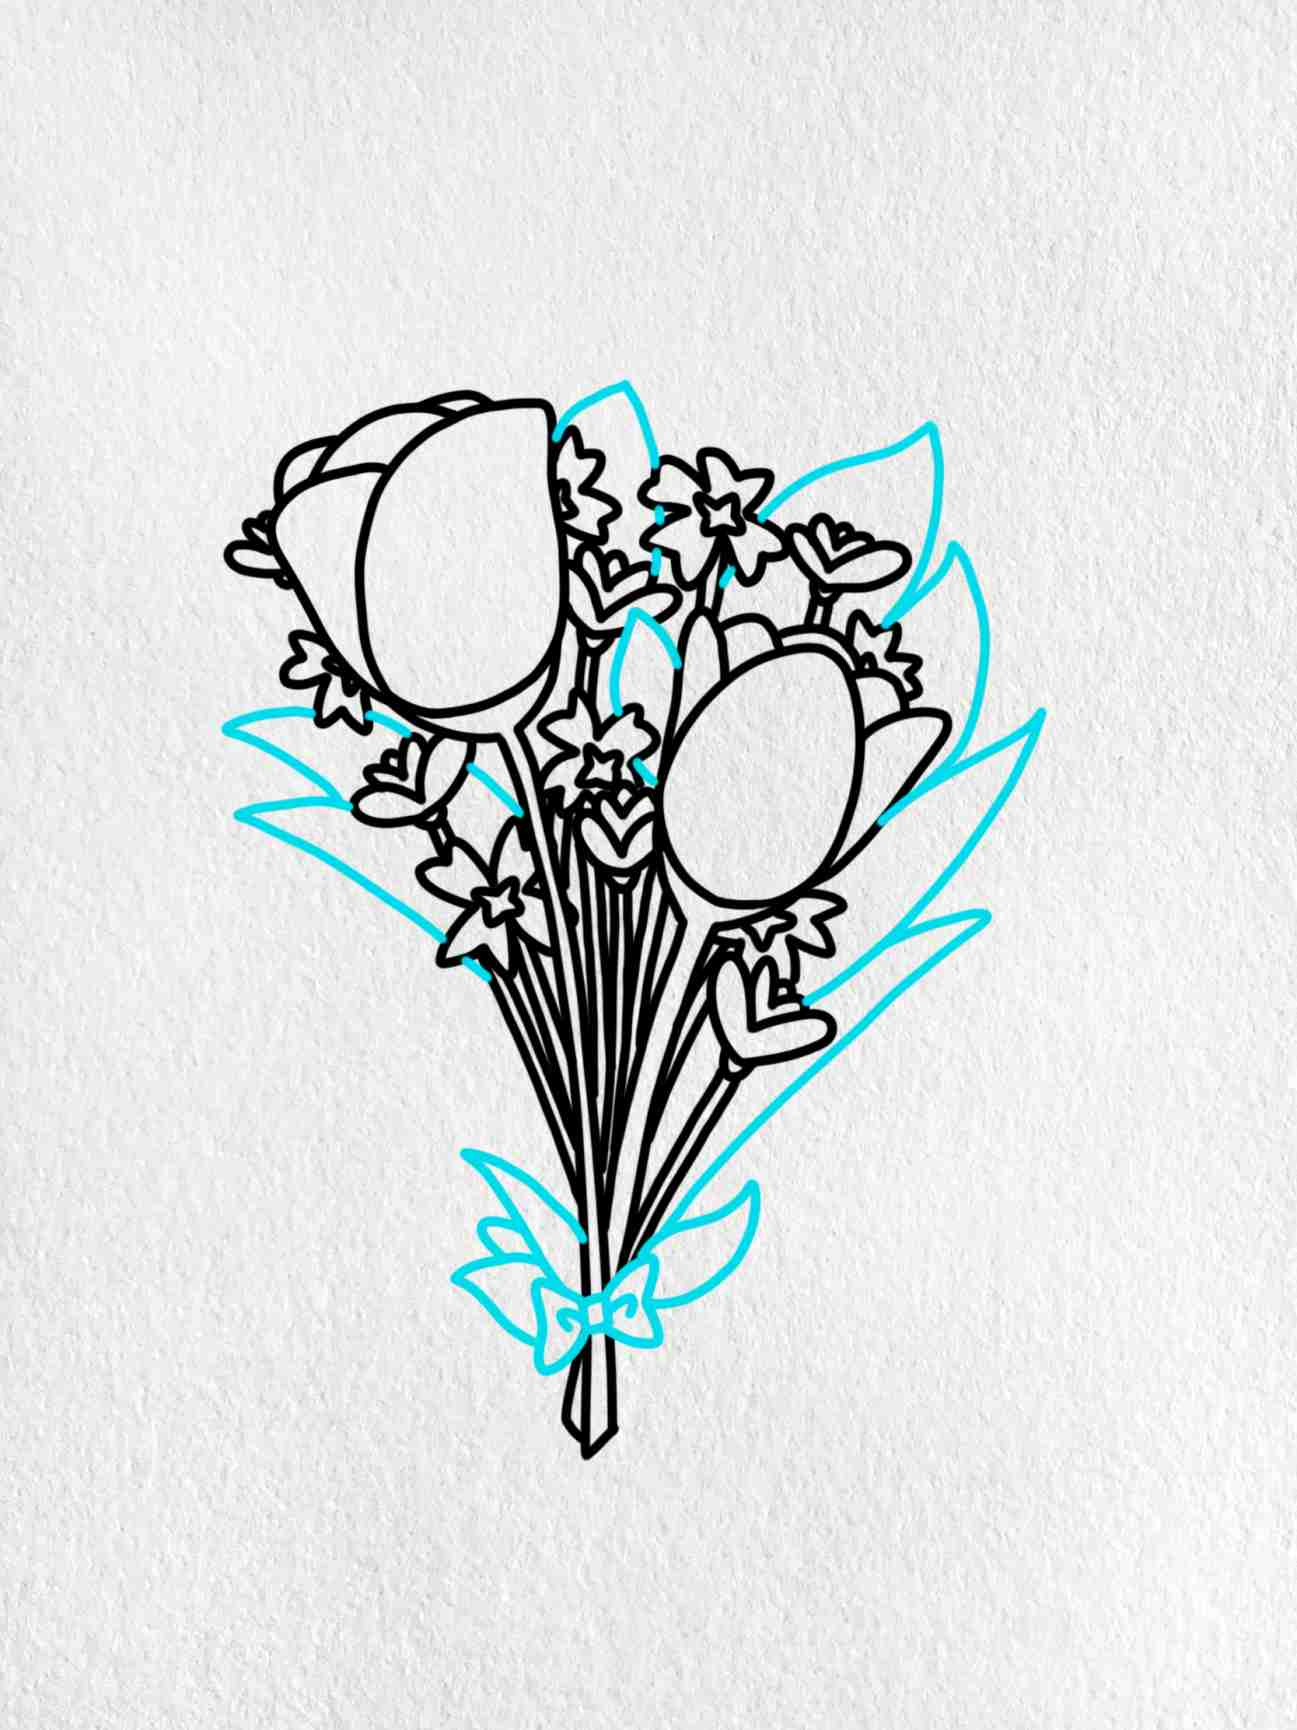 Easy To Draw Flowers: Step 5